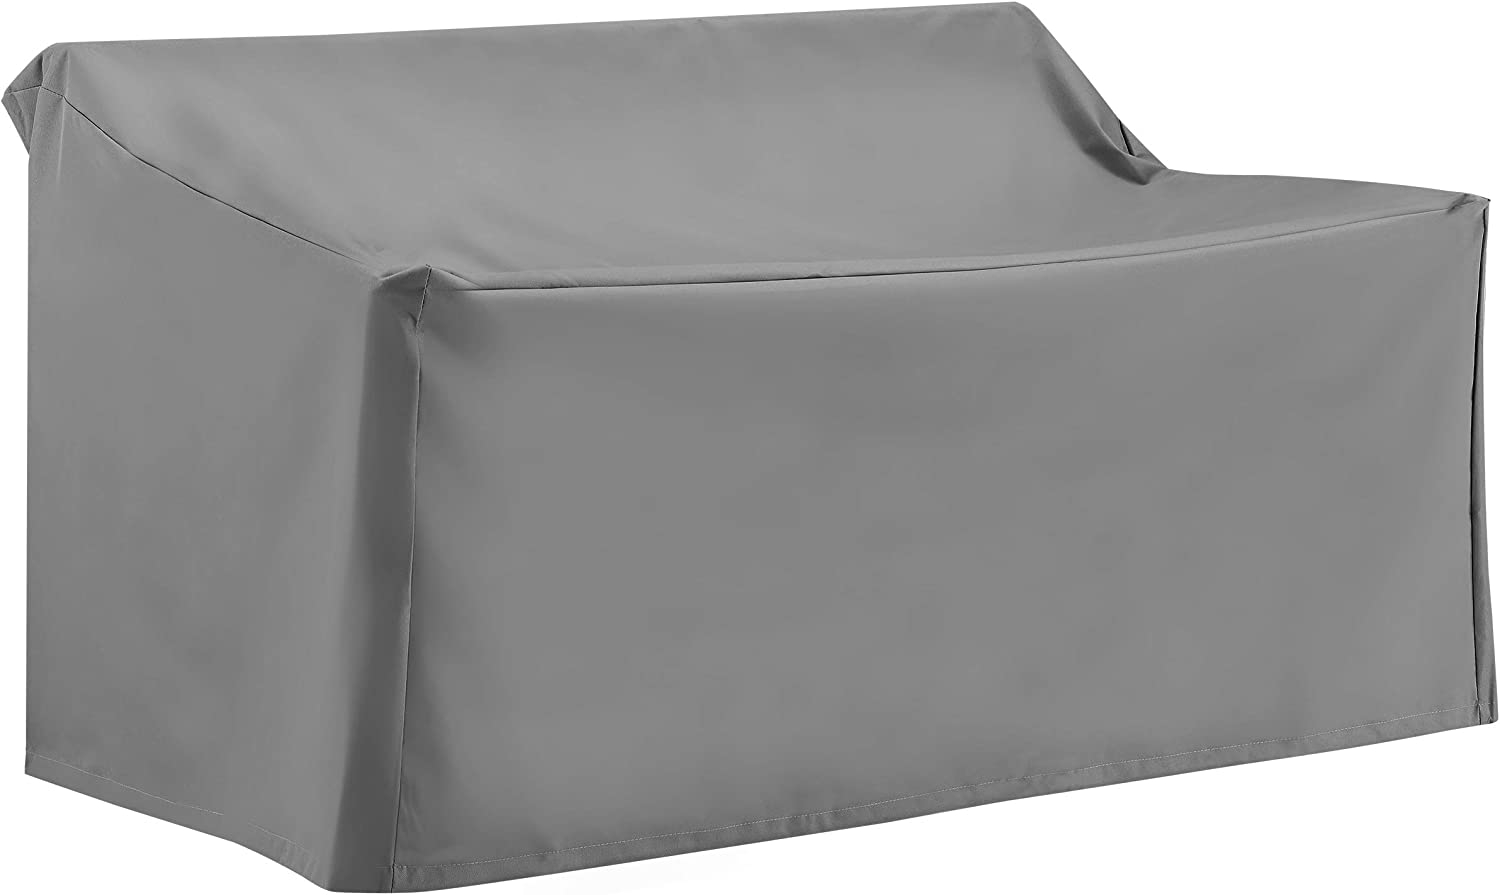 Crosley Furniture CO7501-GY Heavy-Gauge Reinforced Vinyl Outdoor Loveseat Cover, Gray